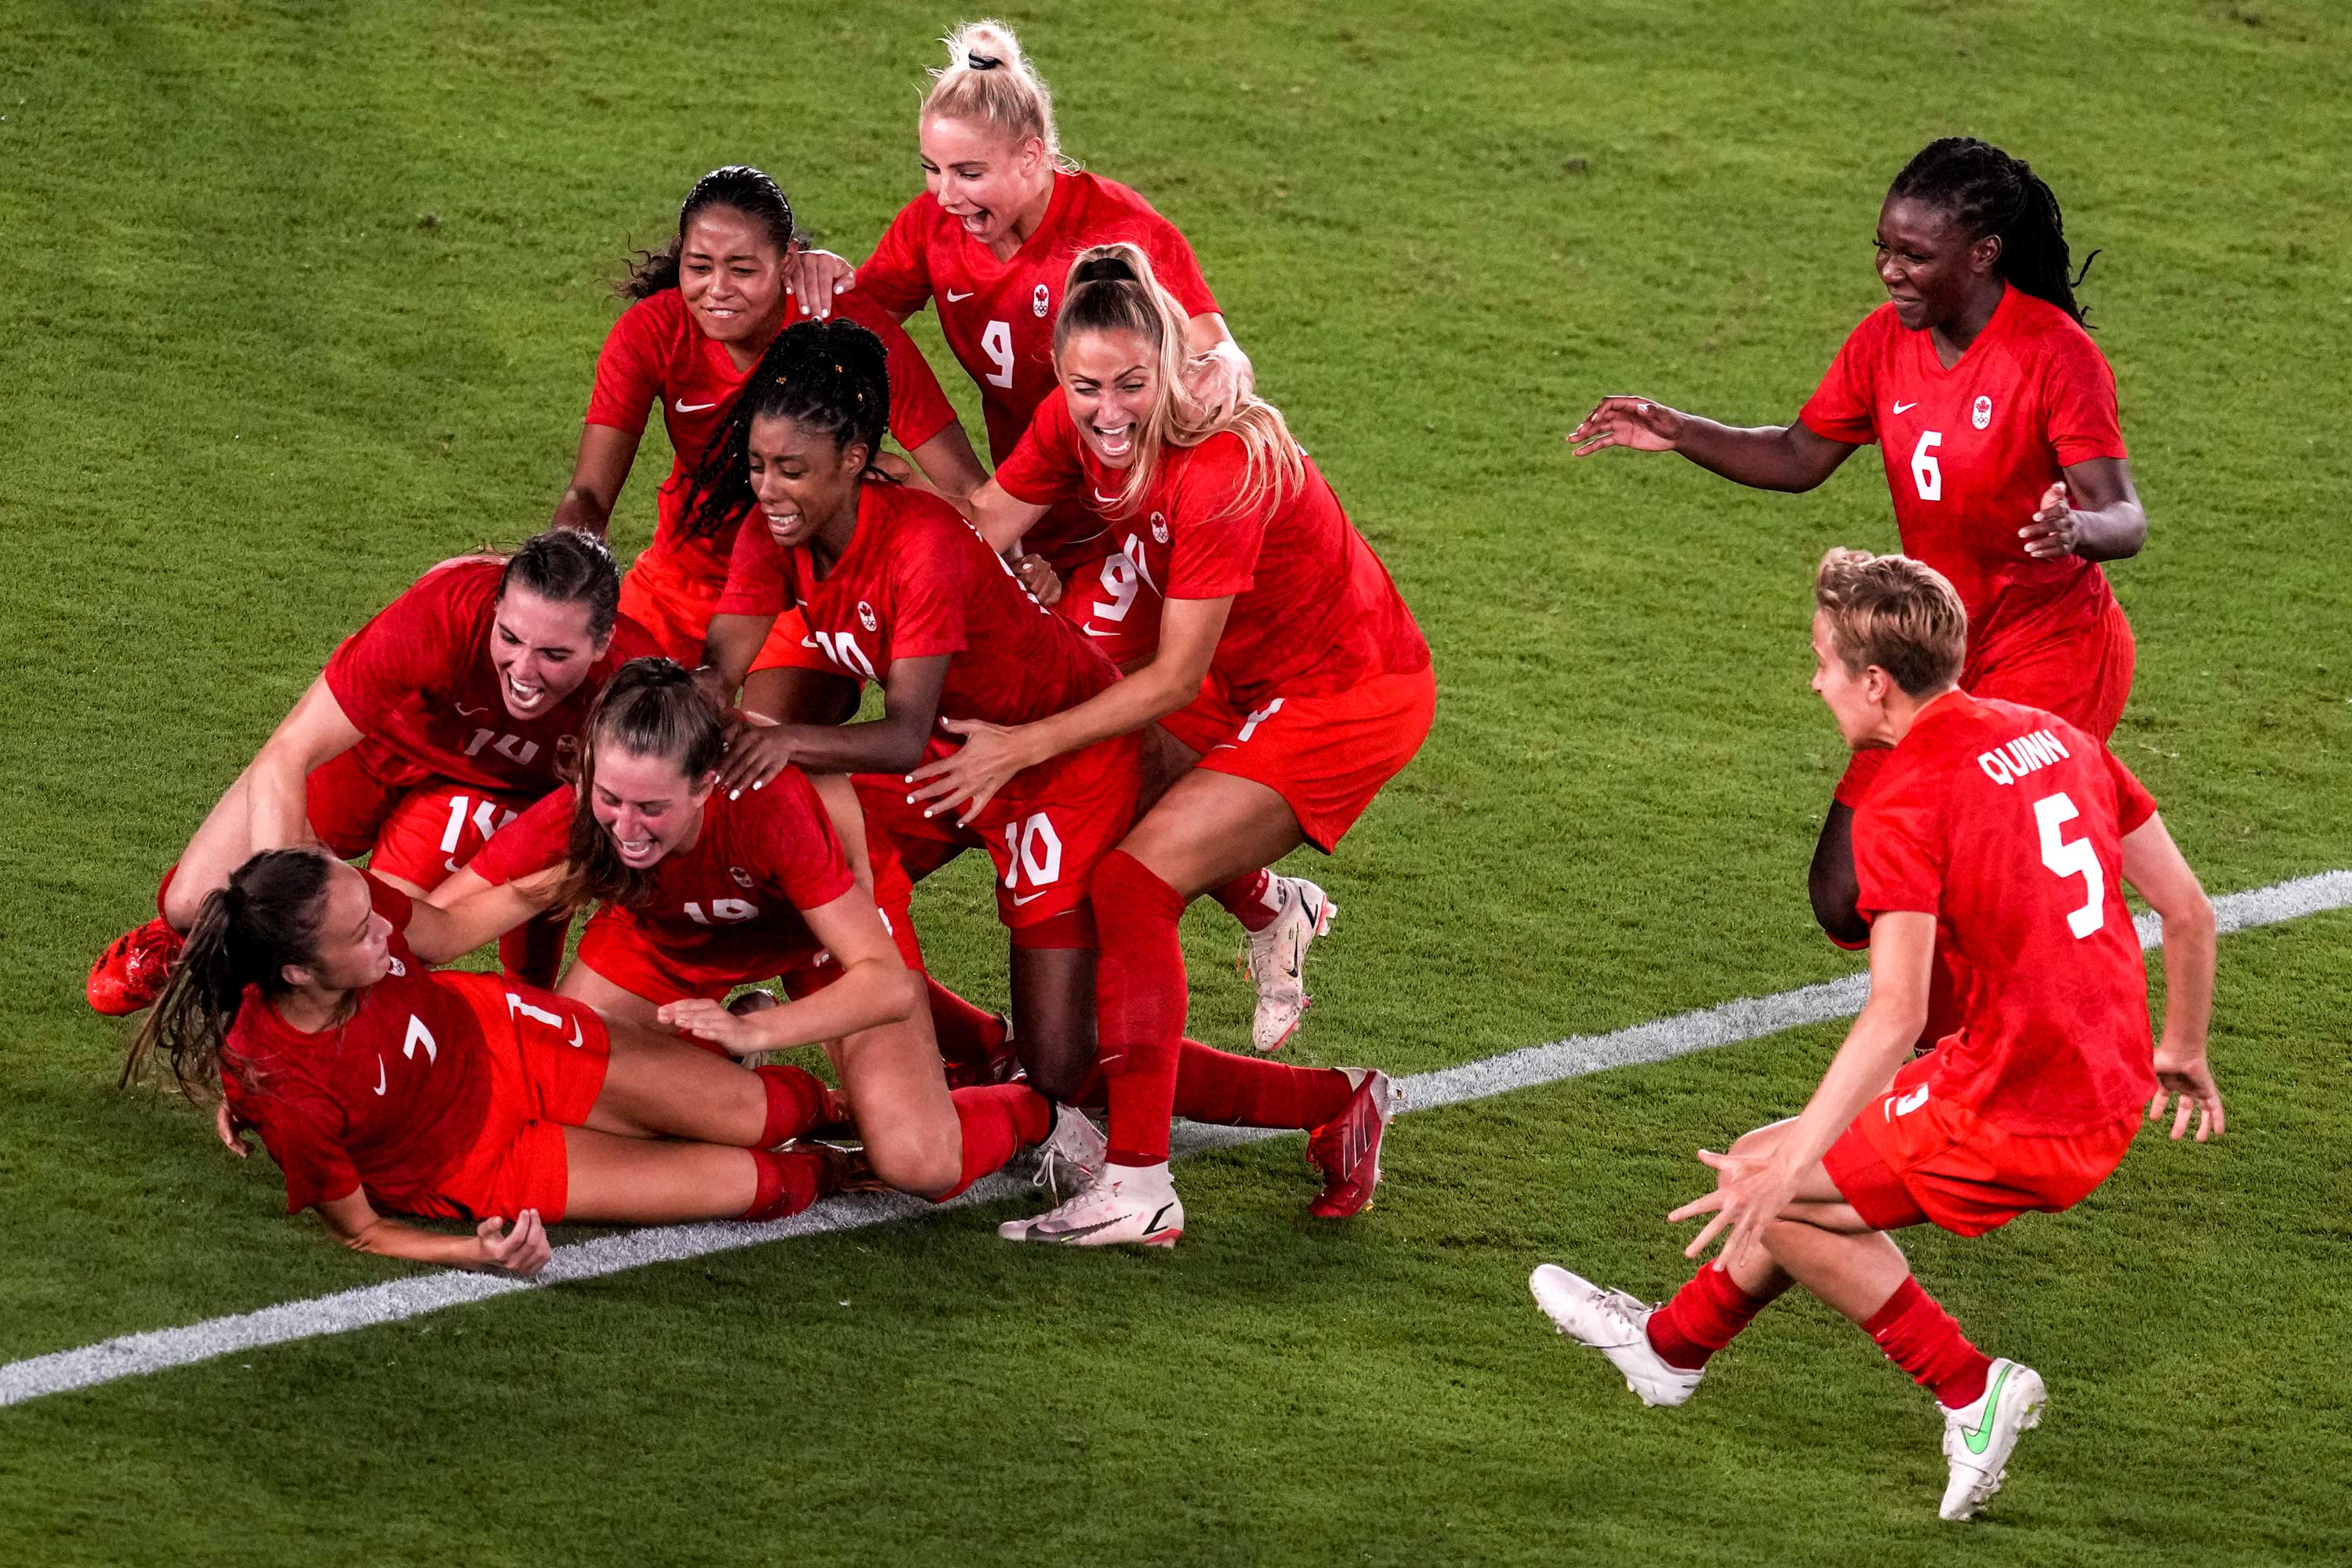 Teammates celebrate with Canada's Julia Grosso after she scored the winning goal against Sweden in the gold medal football final on August 6.